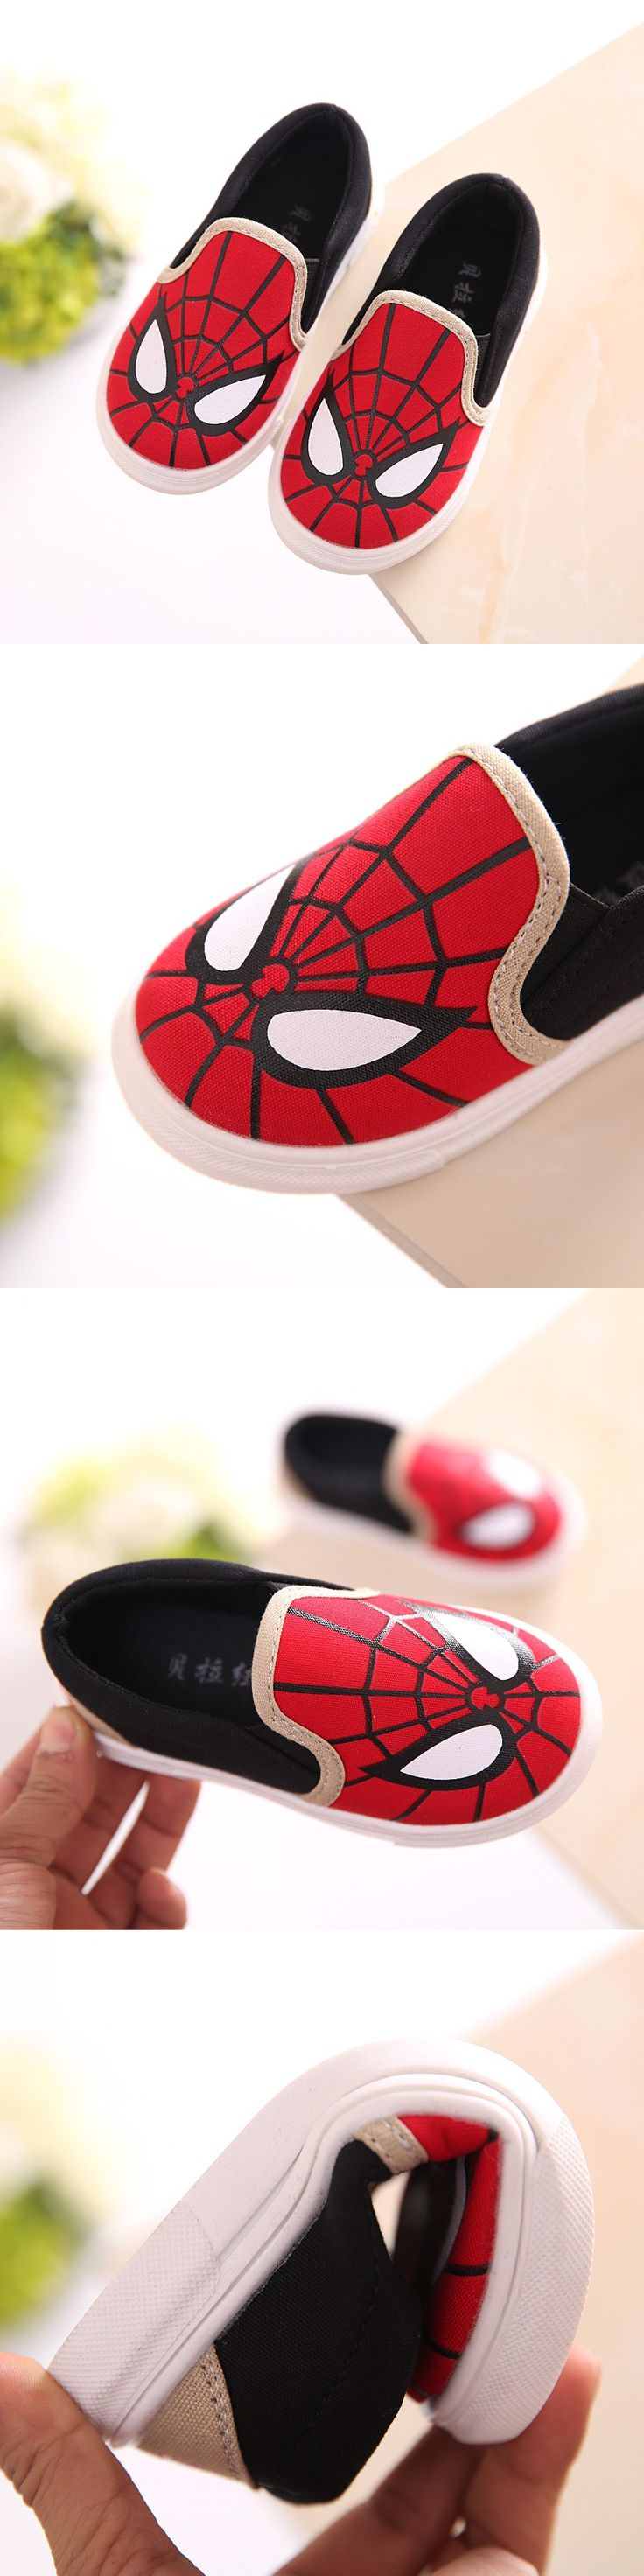 2016 New Spider-Man Children Shoes For Girls Baby Canvas Cartoon Sneakers Kids Shoes For Boys Girls Chaussure Enfant Size 21-30